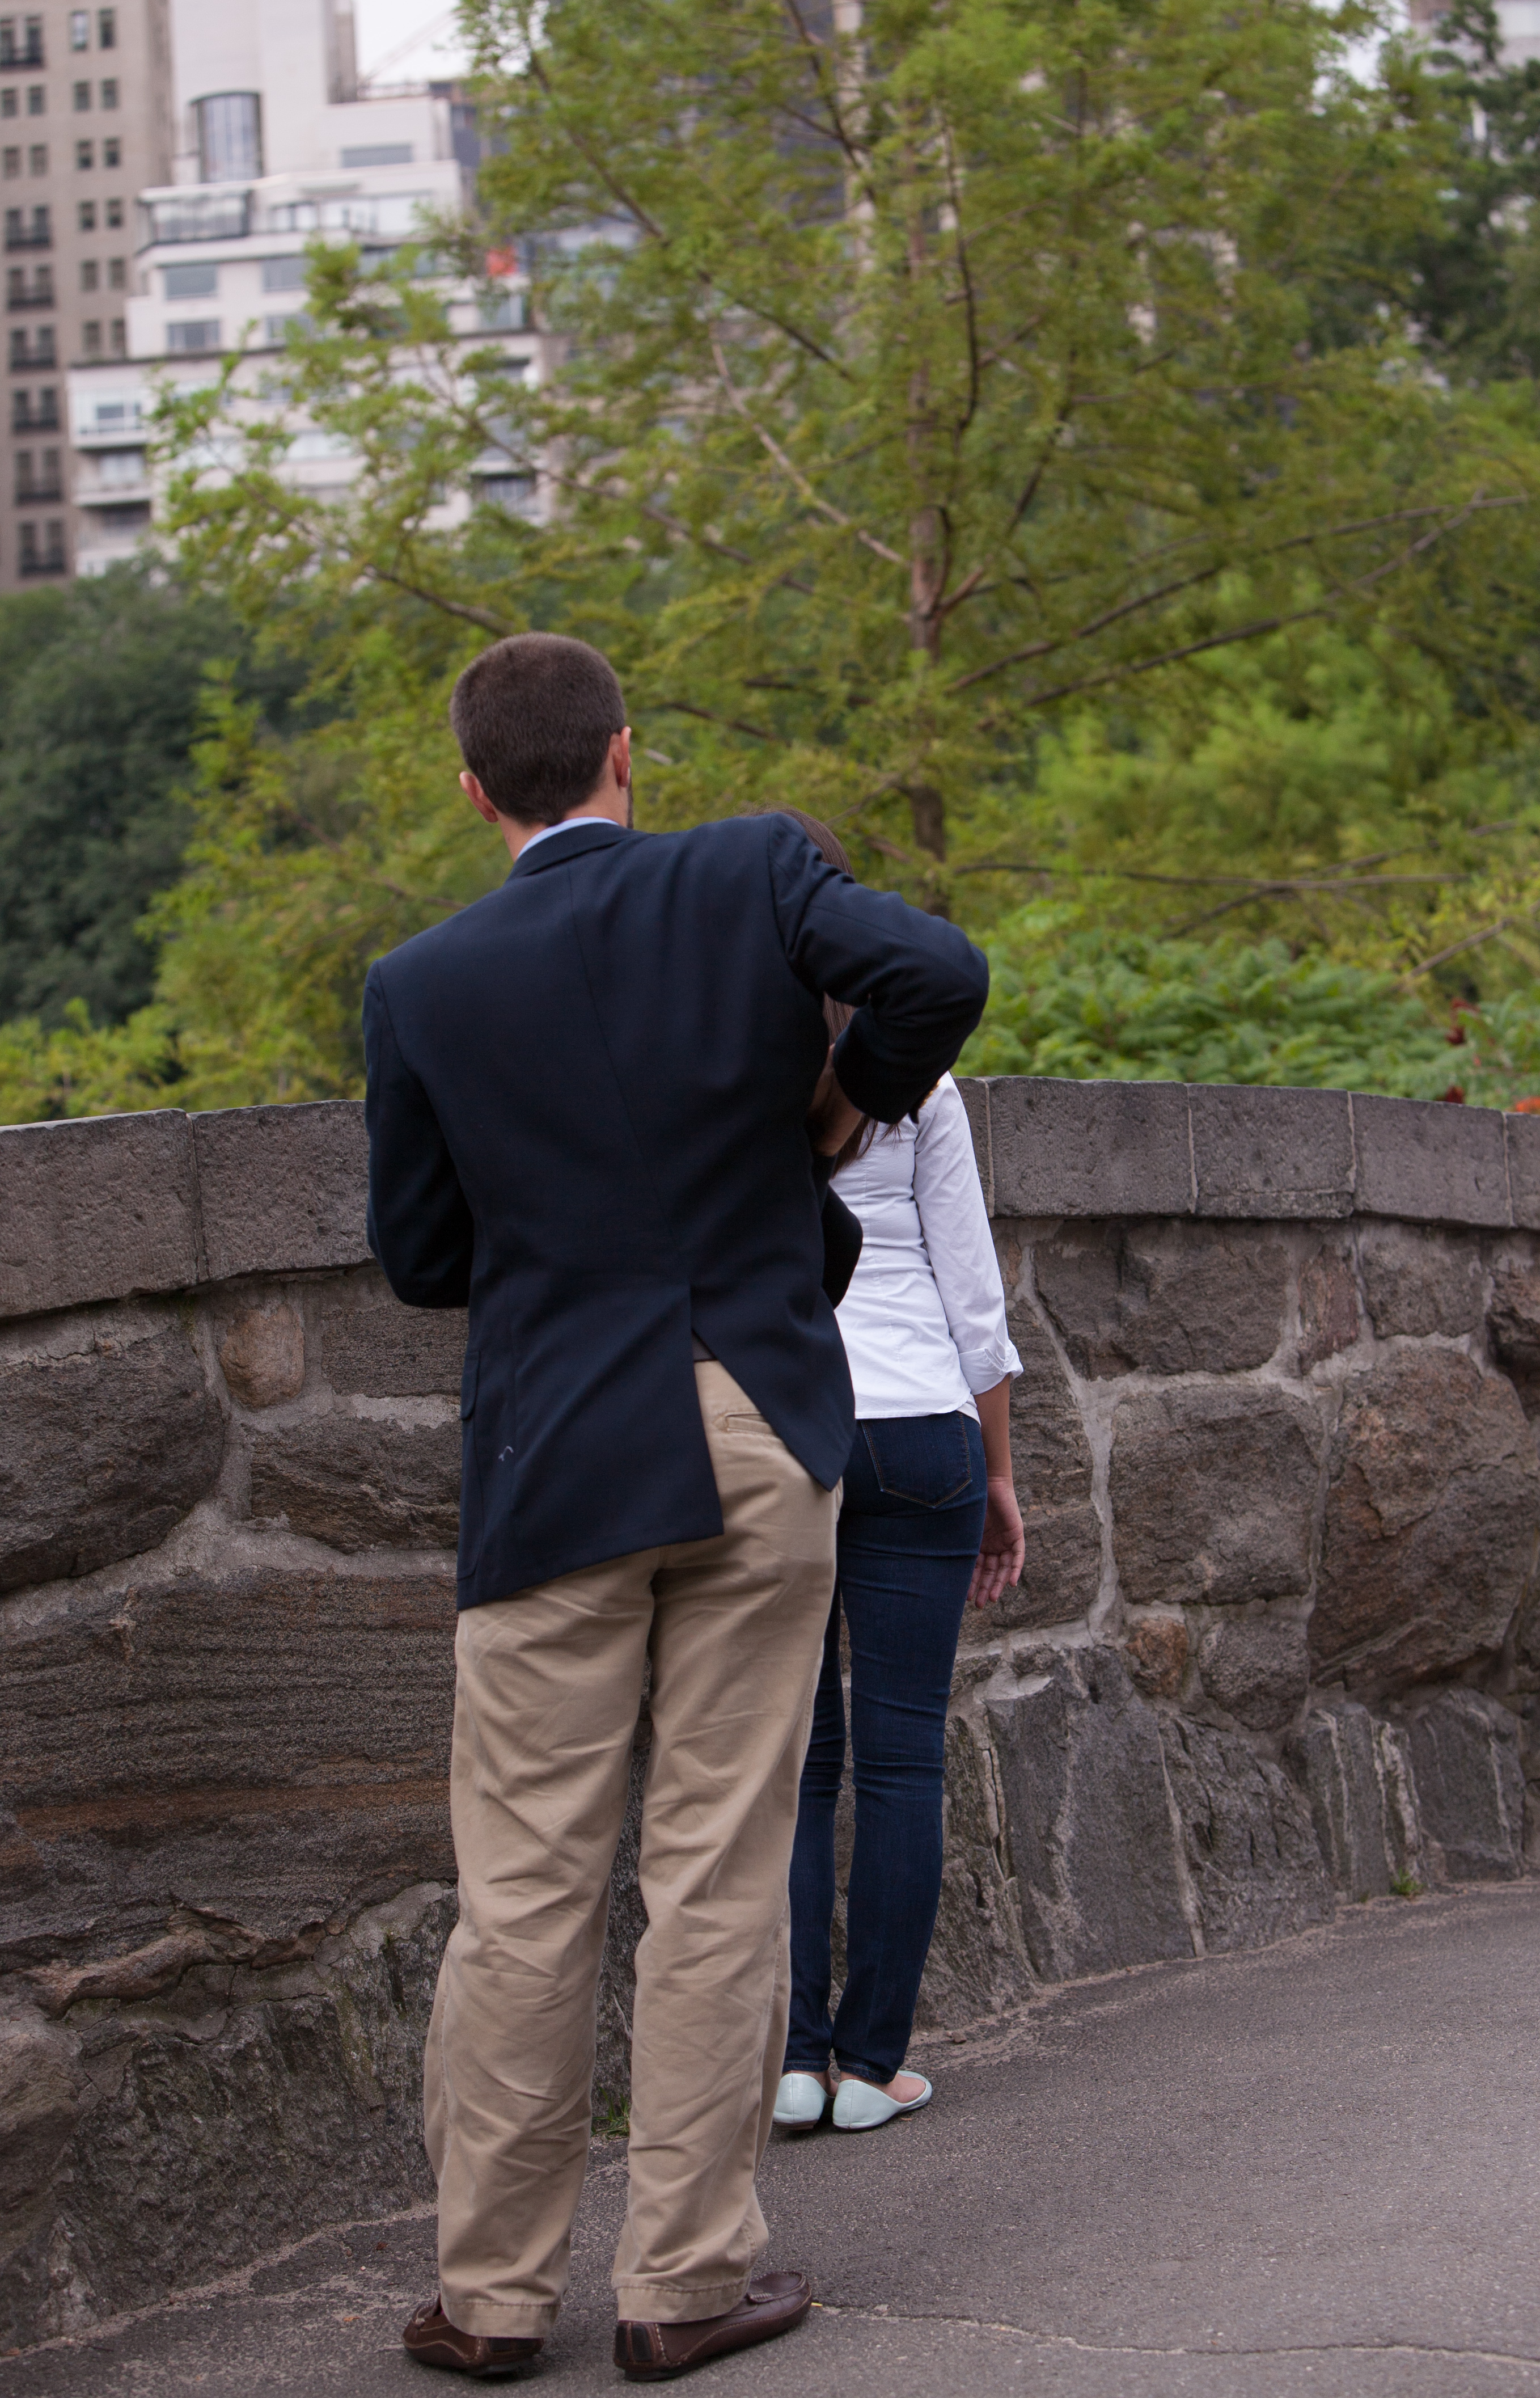 Image 4 of Heather and Nick; Engaged in NYC